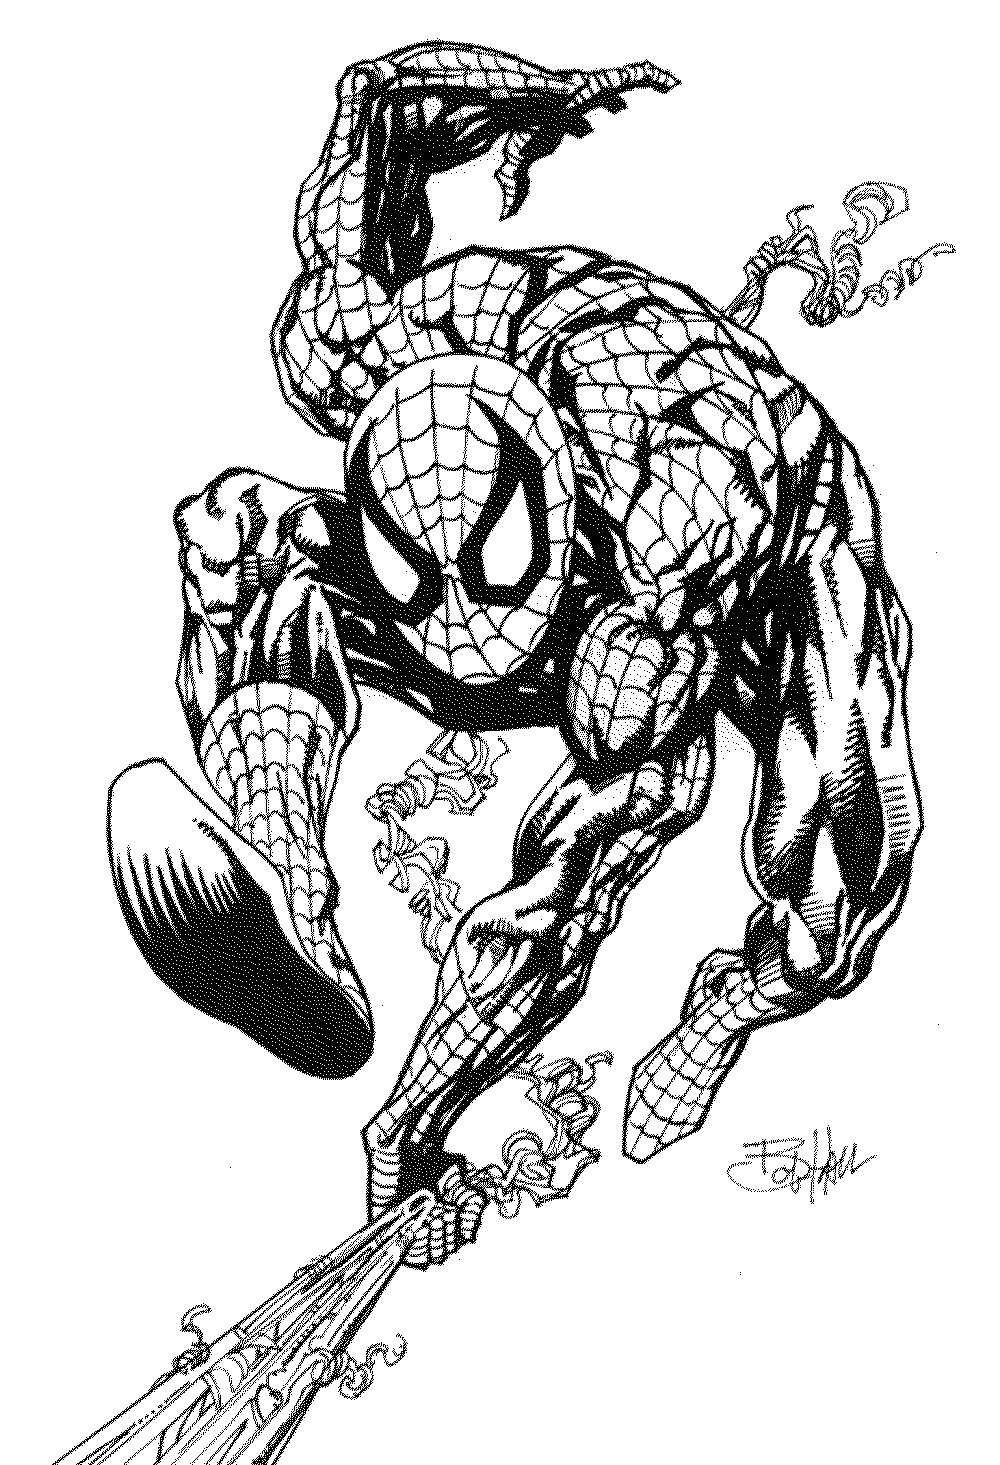 spiderman picture to color spiderman coloring pages download free coloring sheets picture spiderman color to